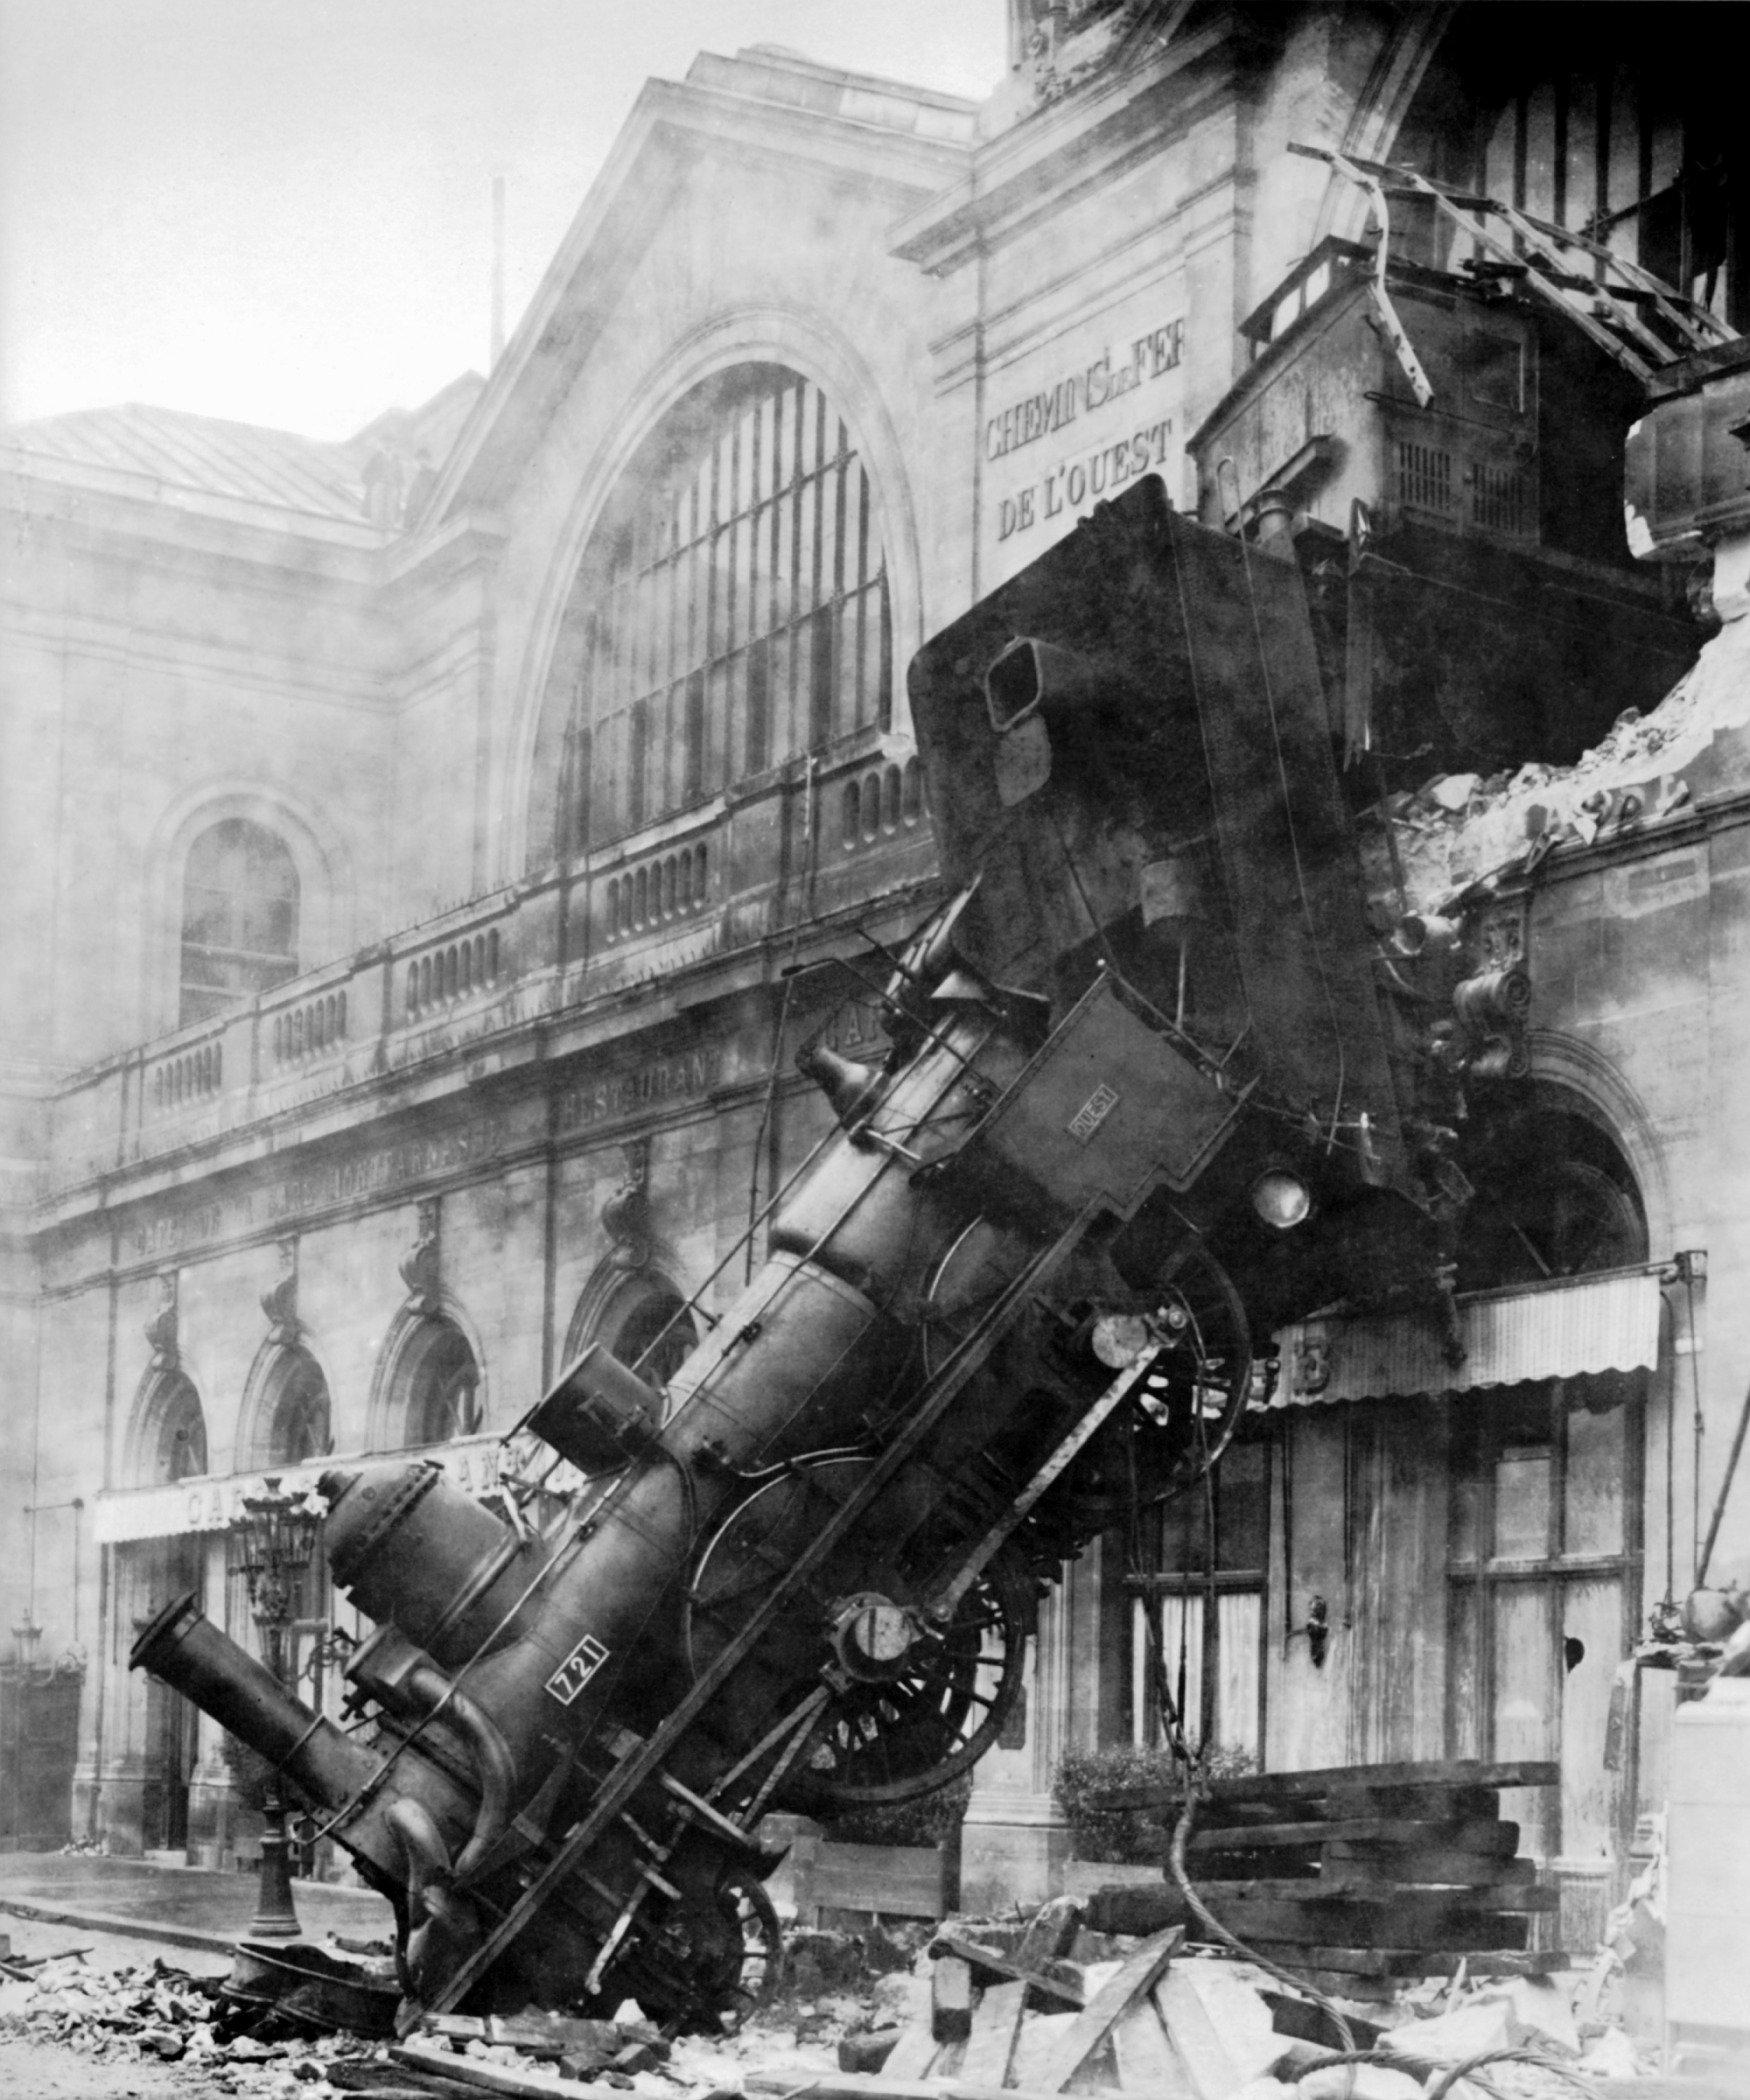 Black and white image of a runaway train that crashed into a building in Montparnasse